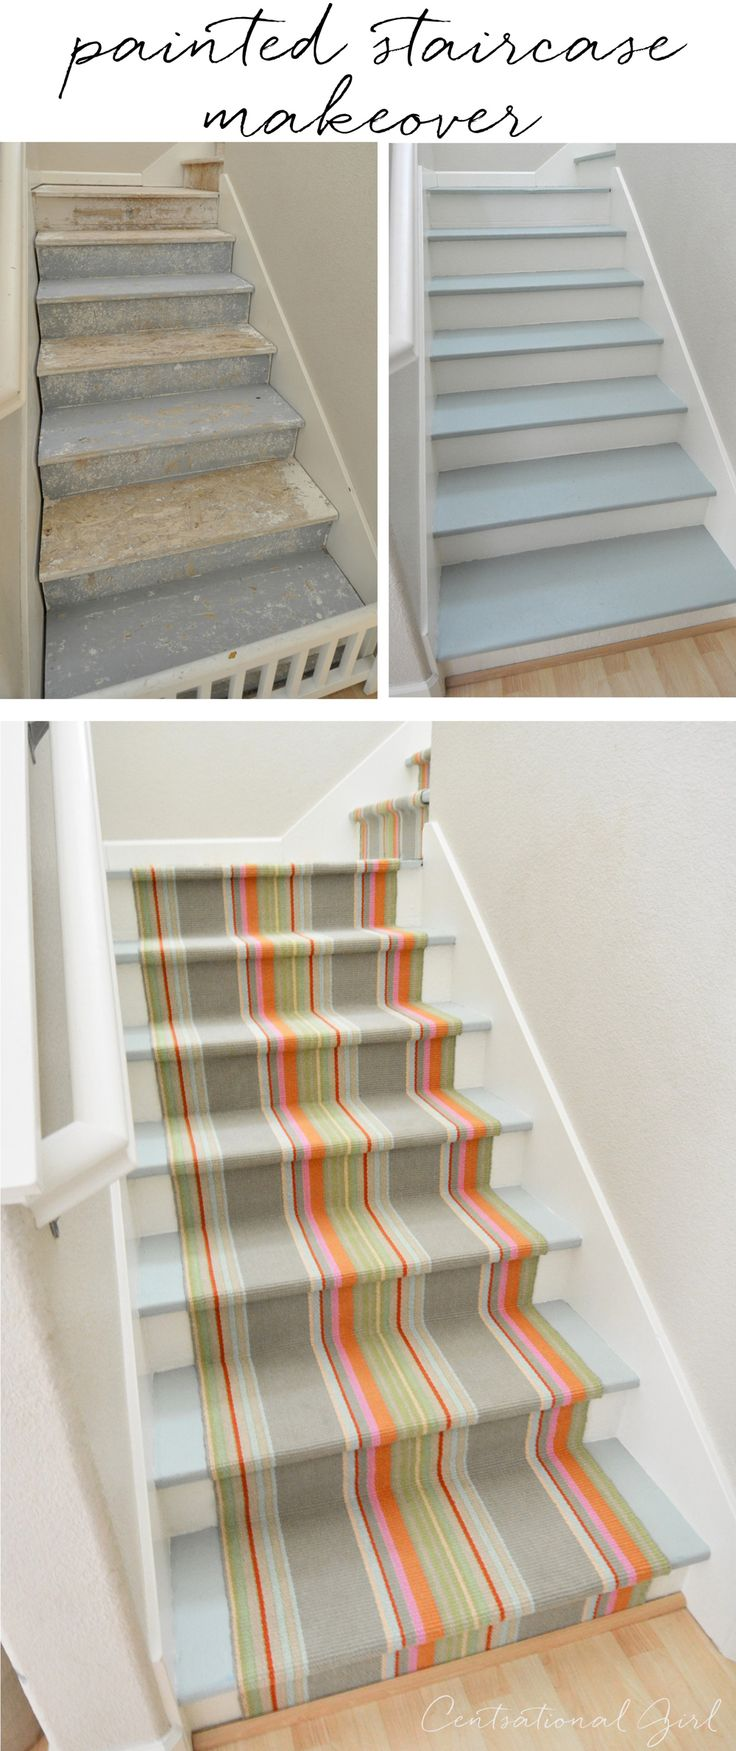 painted+staircase+makeover+with+striped+runner